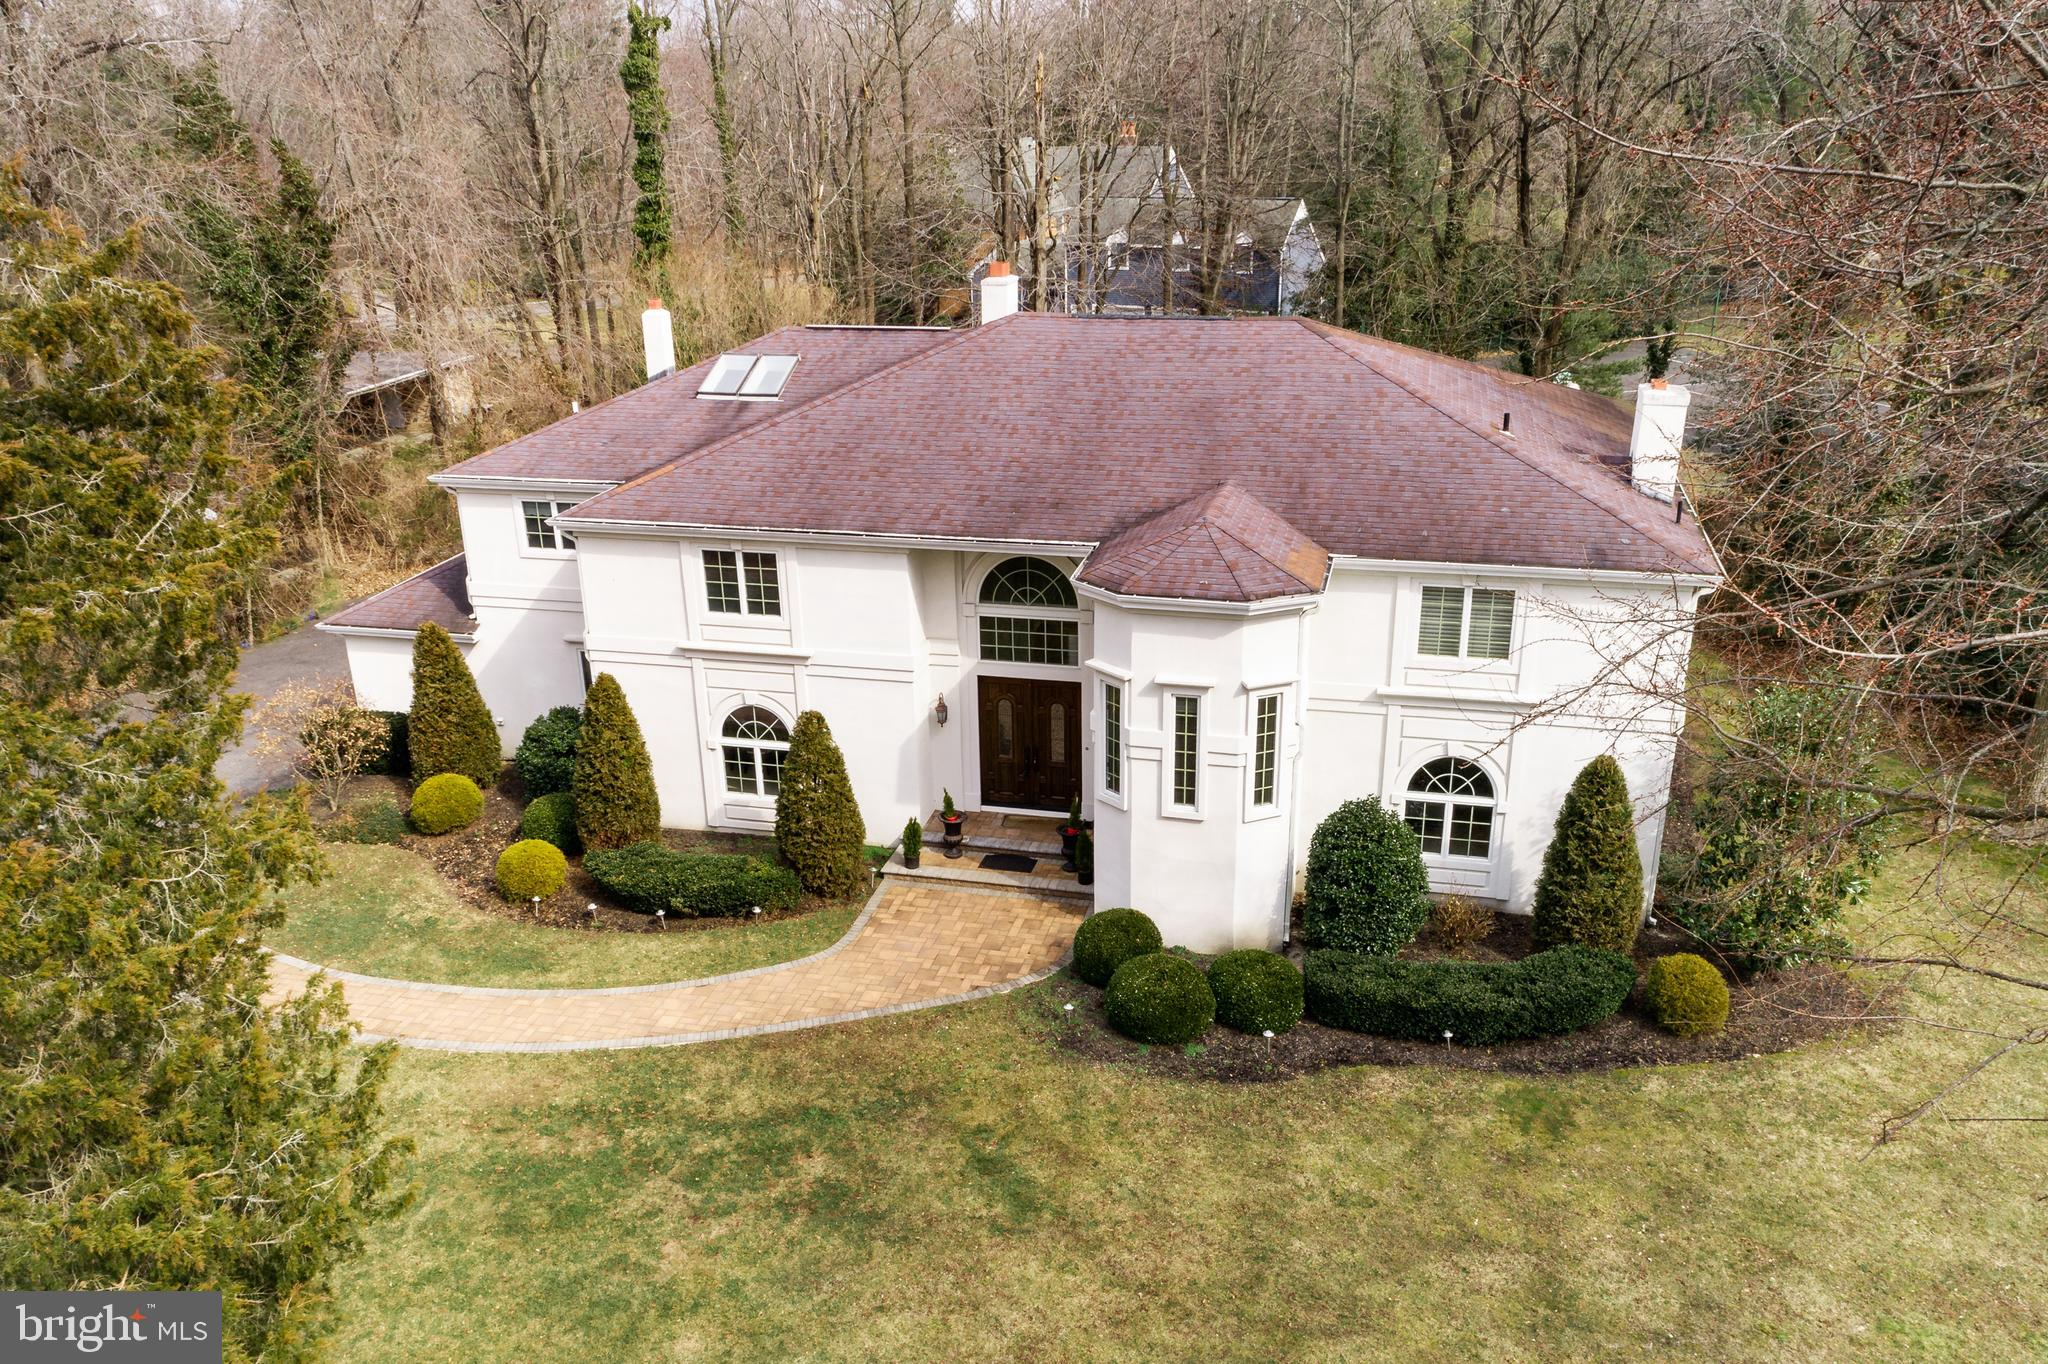 201 MUNN LANE, CHERRY HILL, NJ 08034